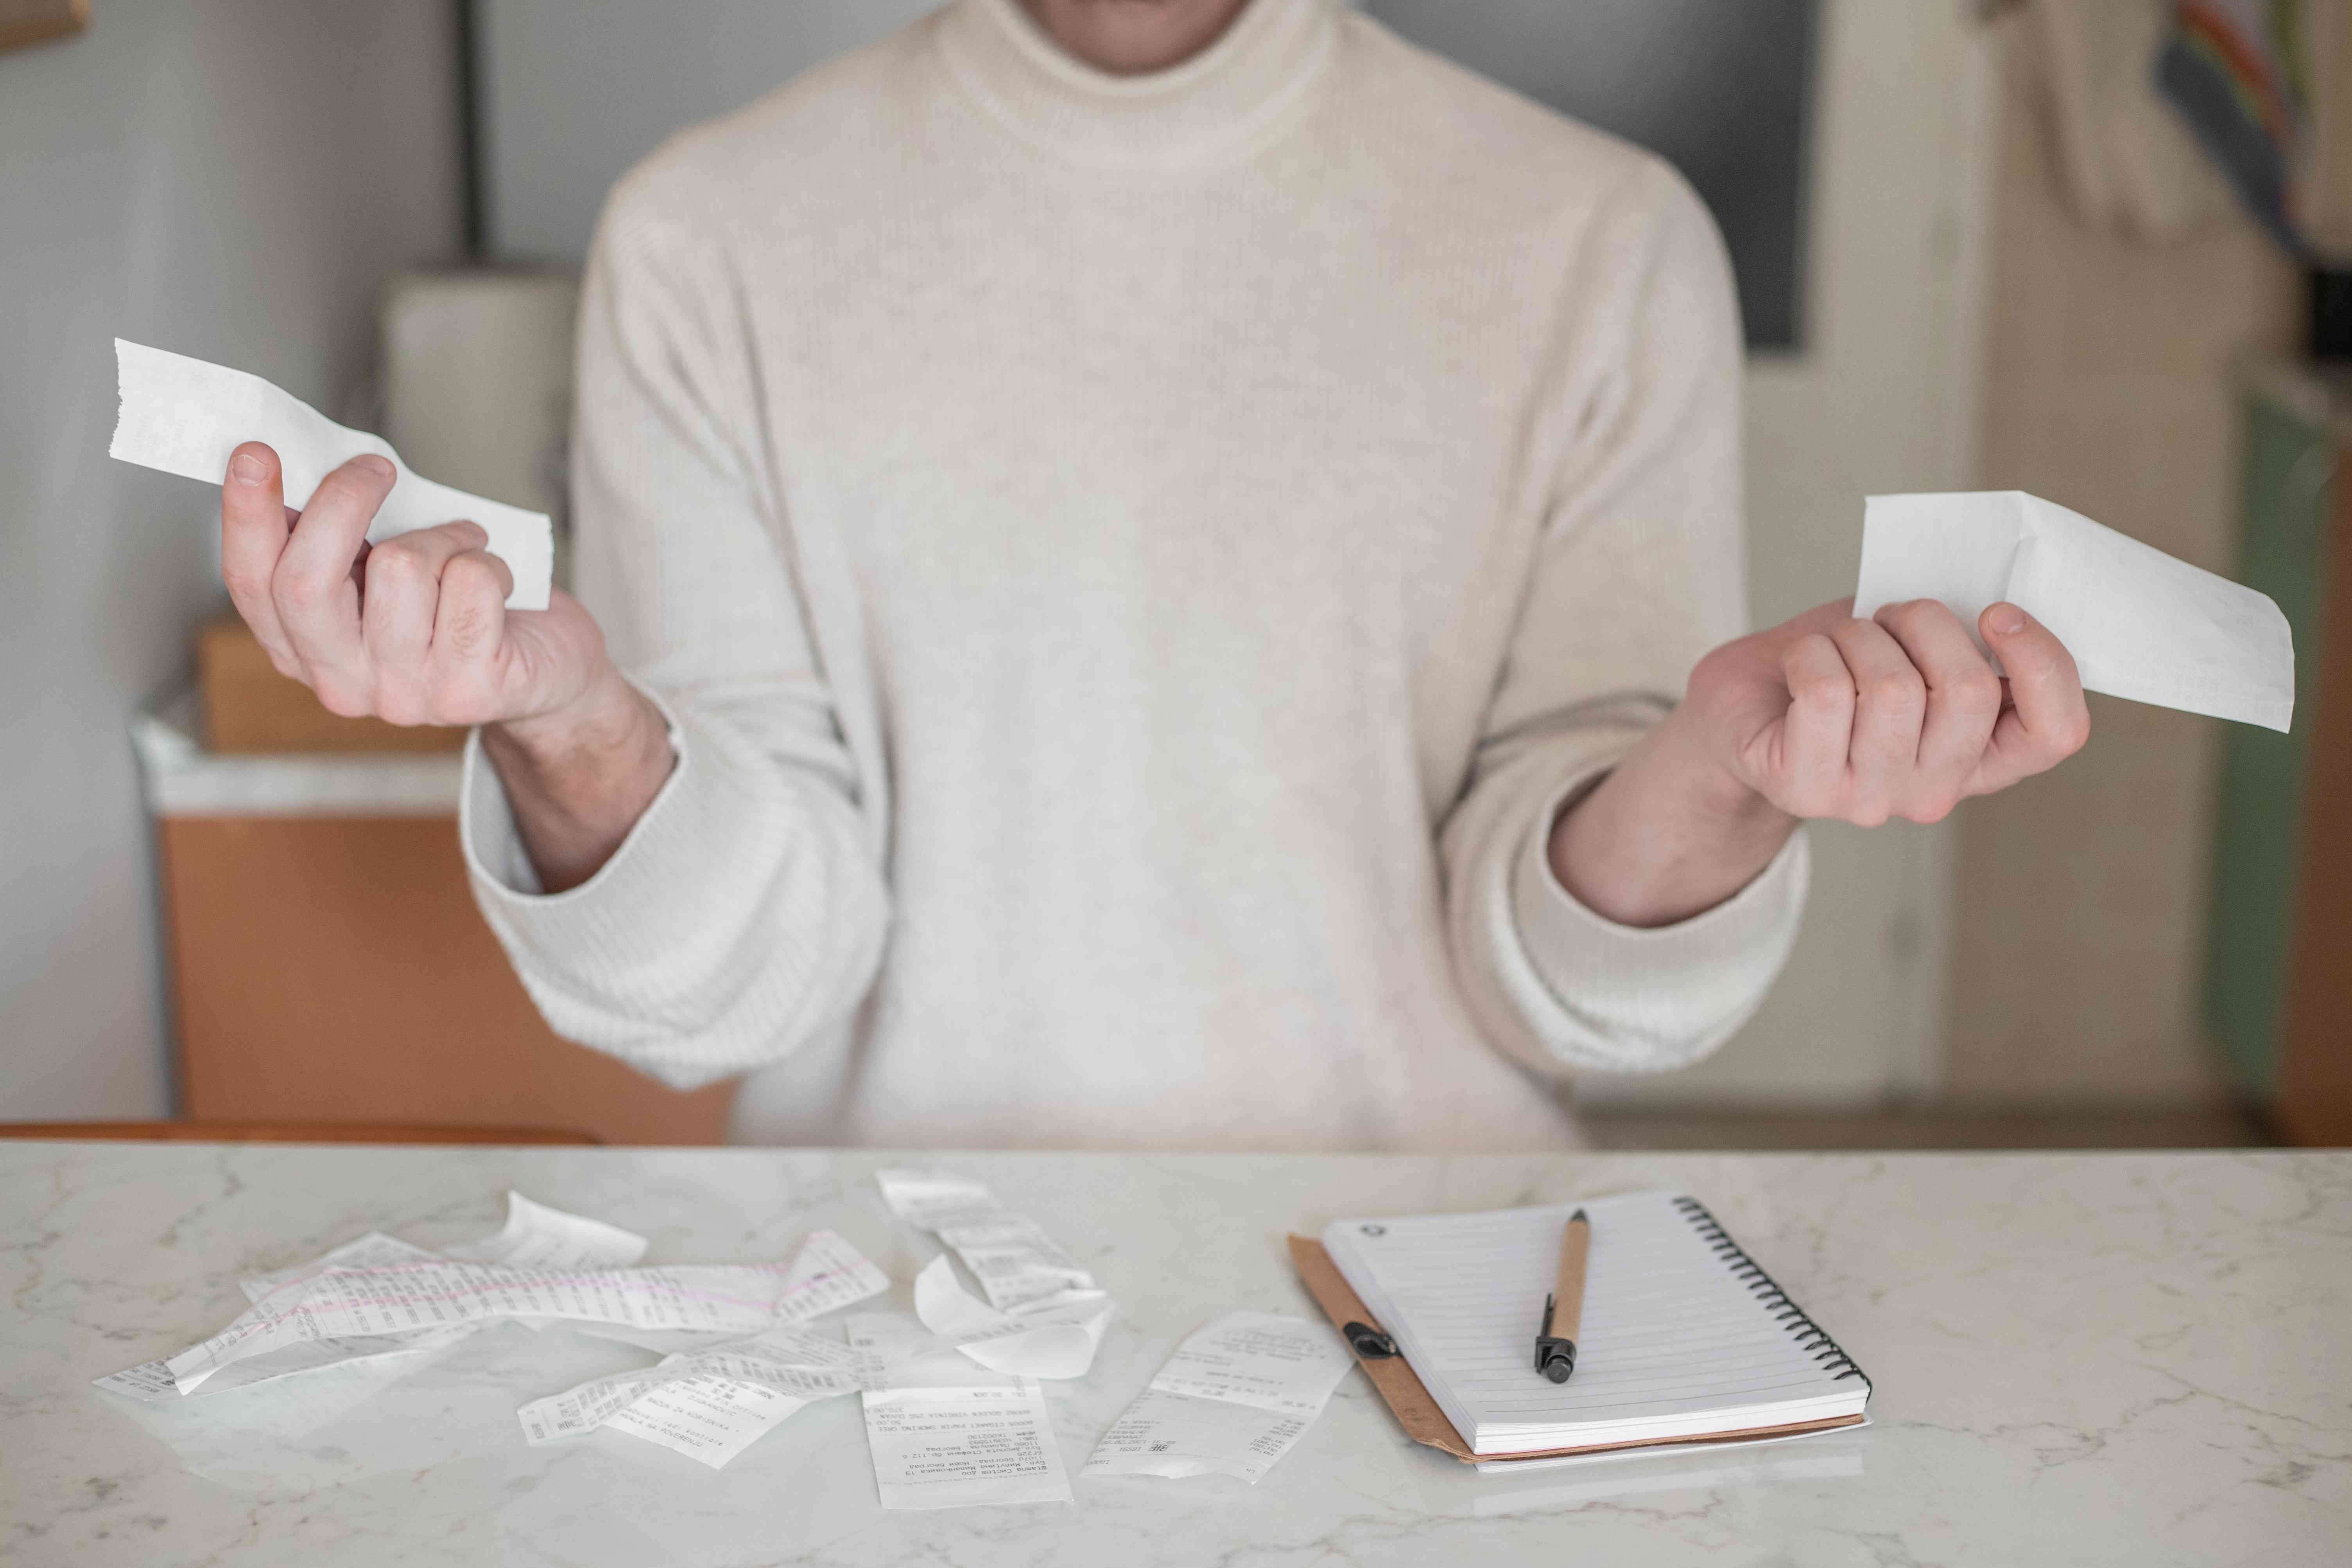 person in cream sweater holds different paper receipts in each hand